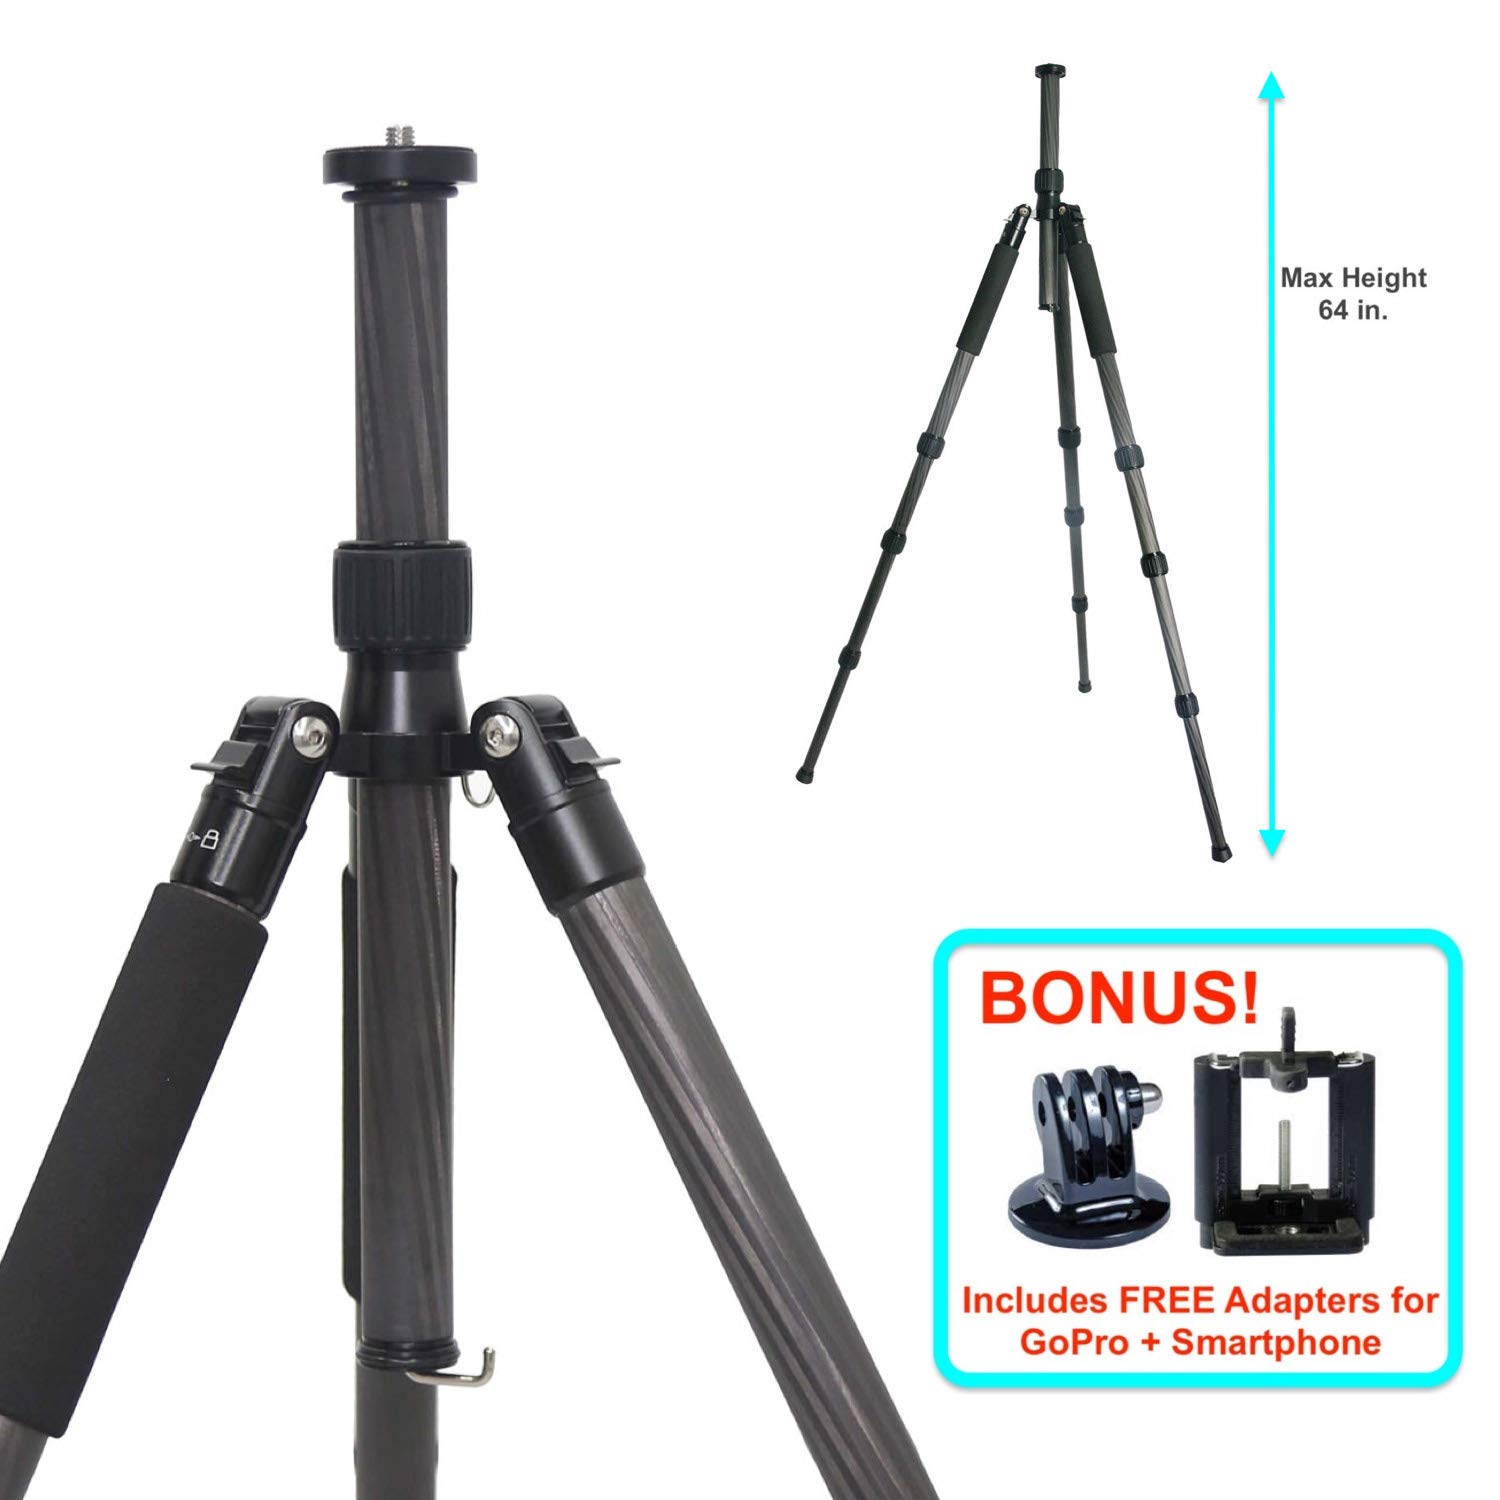 TERRA FIRMA TRIPODS T-CF450 Carbon Fiber 4 Section Tripod Leg Set, Black